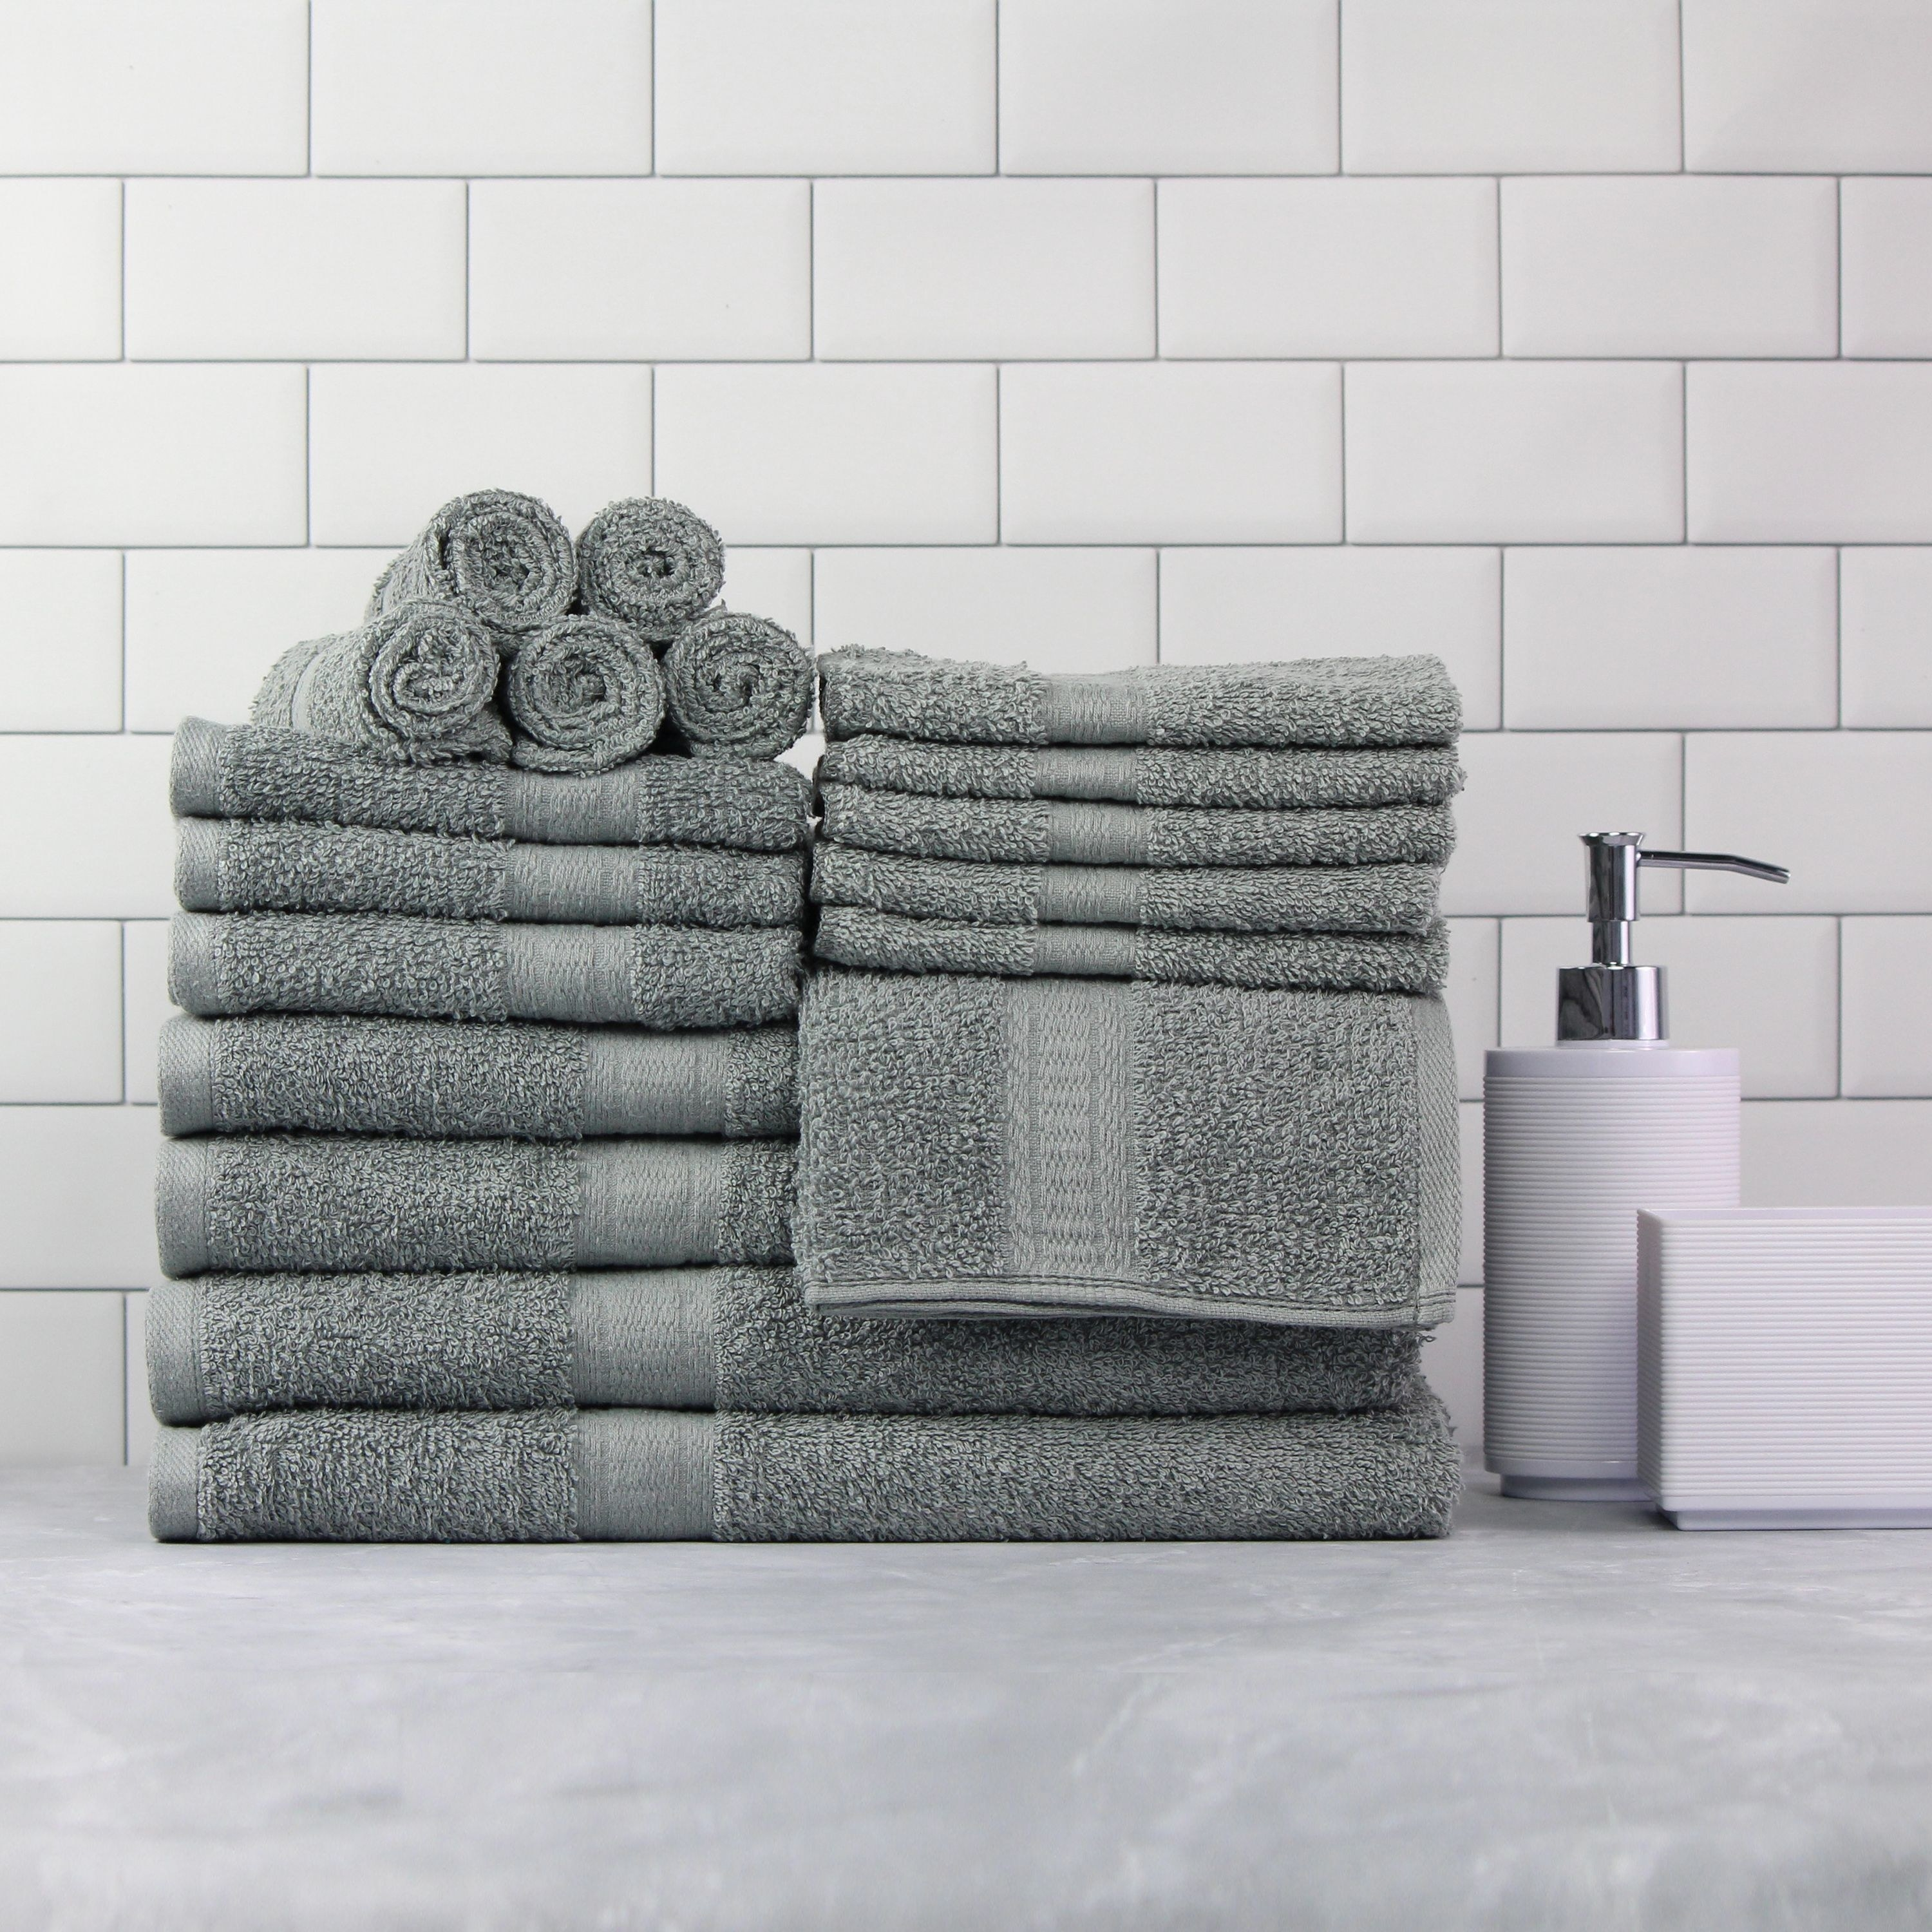 A pack of grey towels in a home